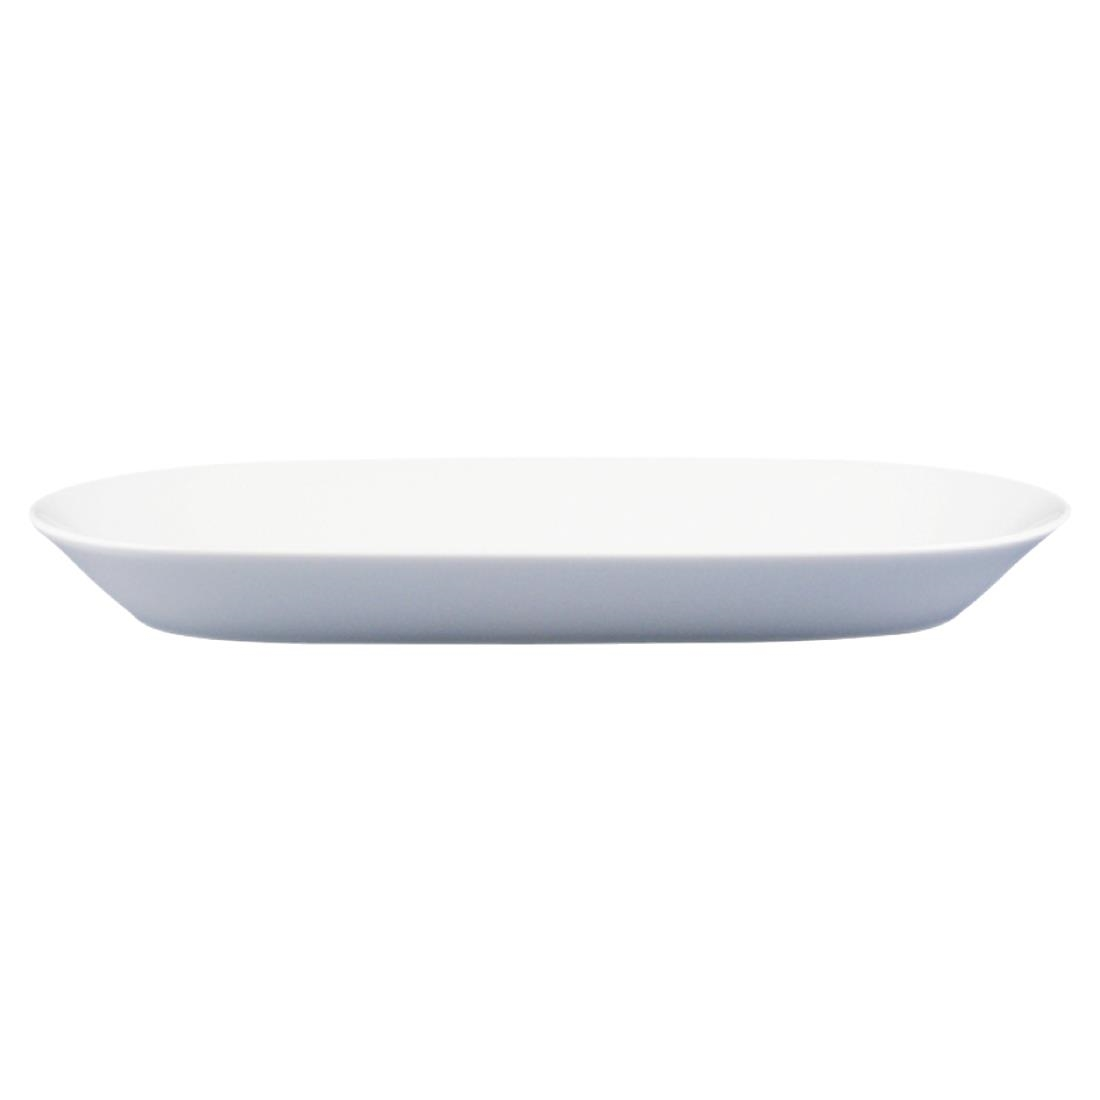 Image of Dudson Flair Rectangular Trays 310mm (Pack of 3) Pack of 3